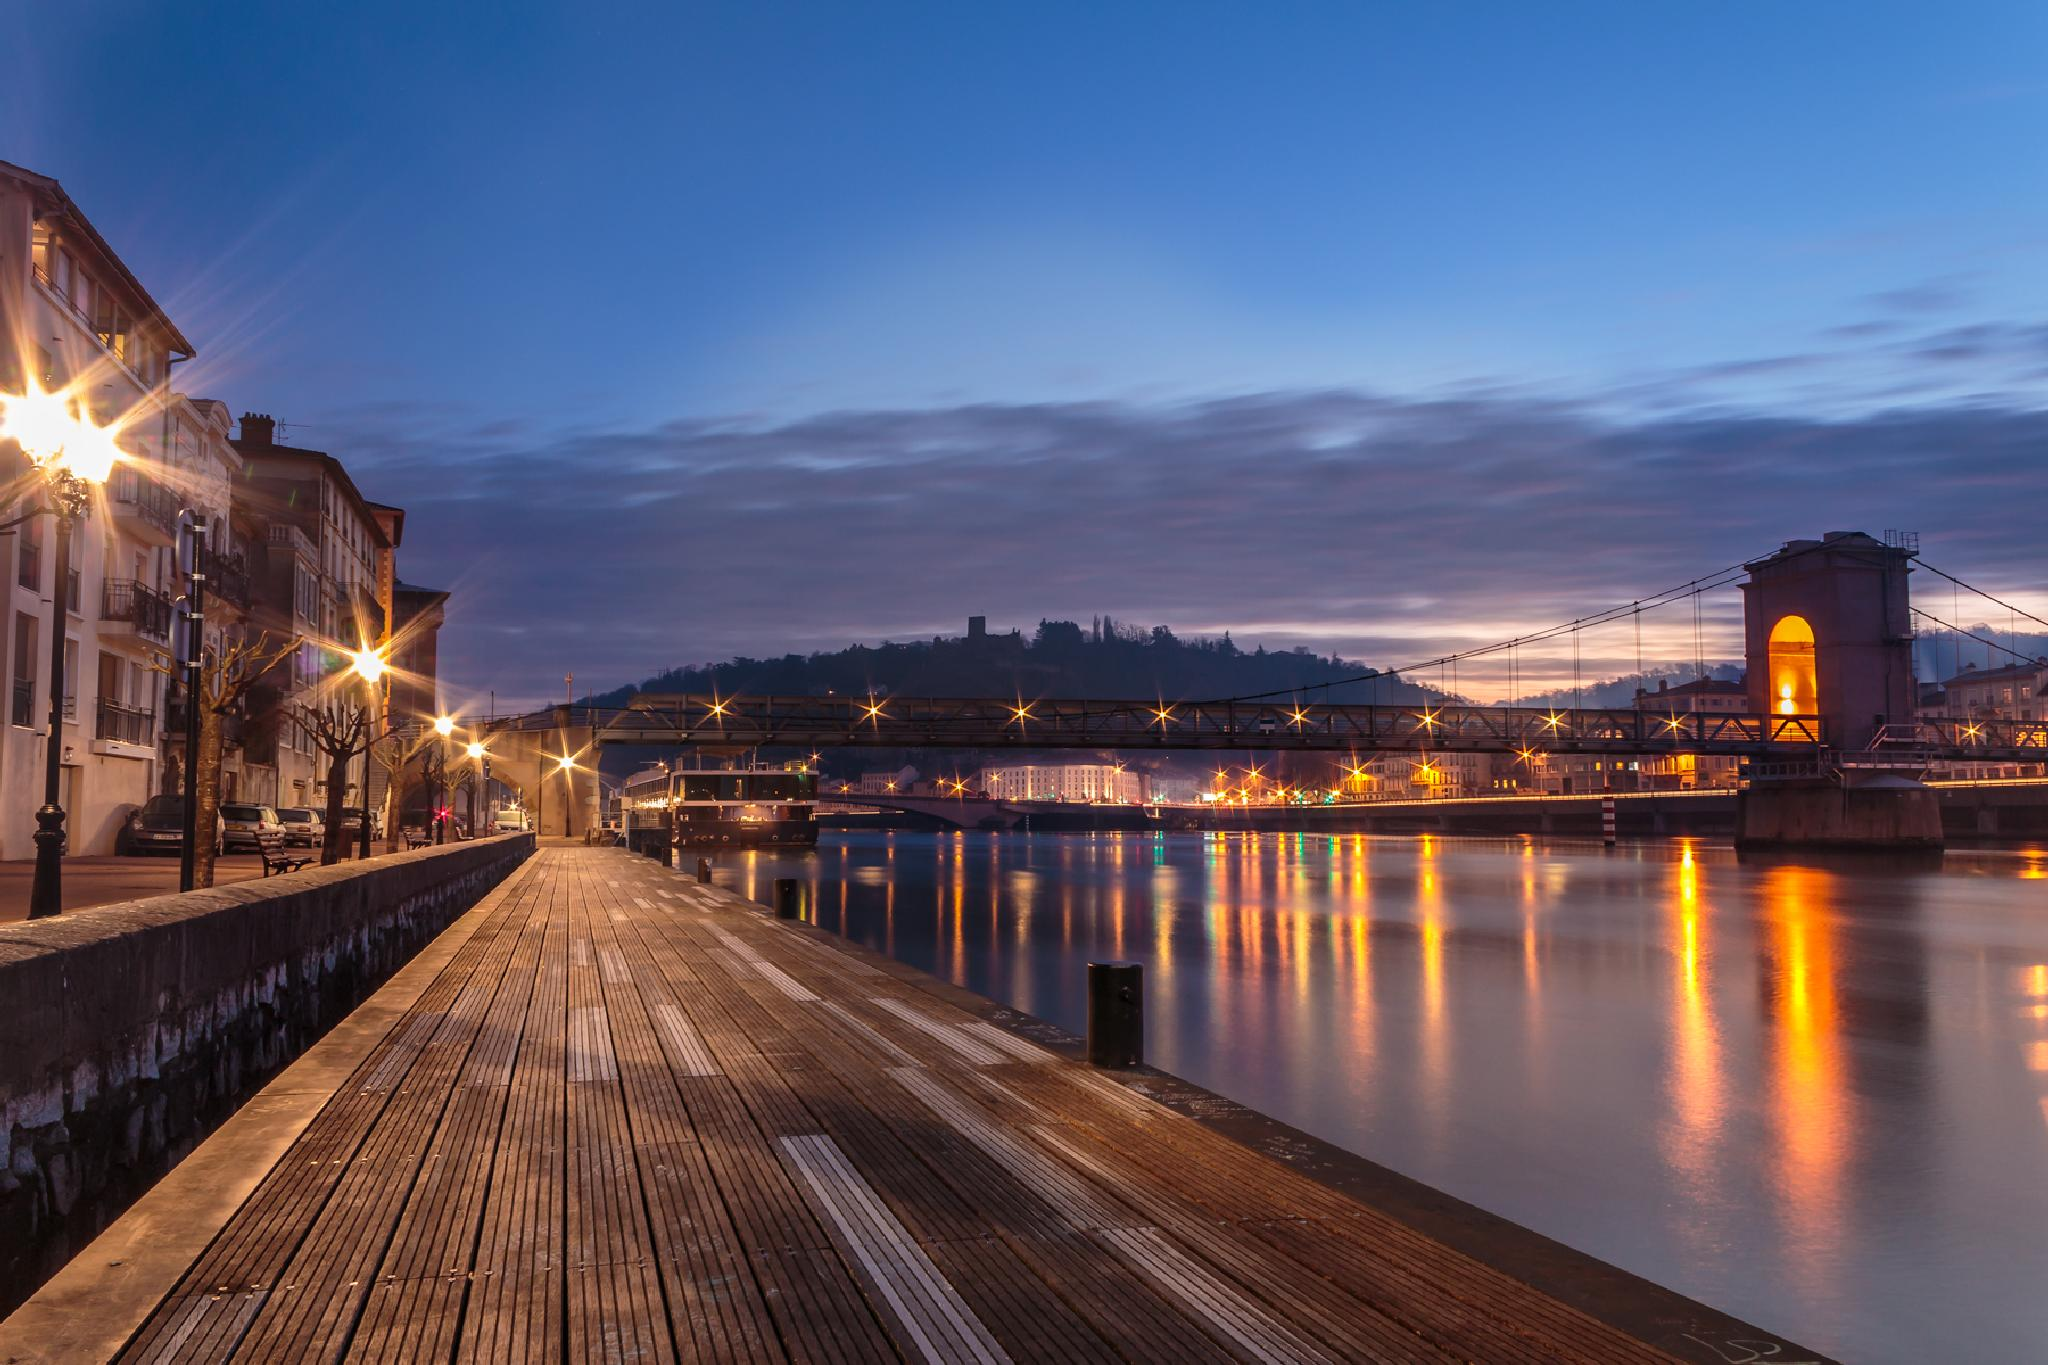 The pier by olivier42